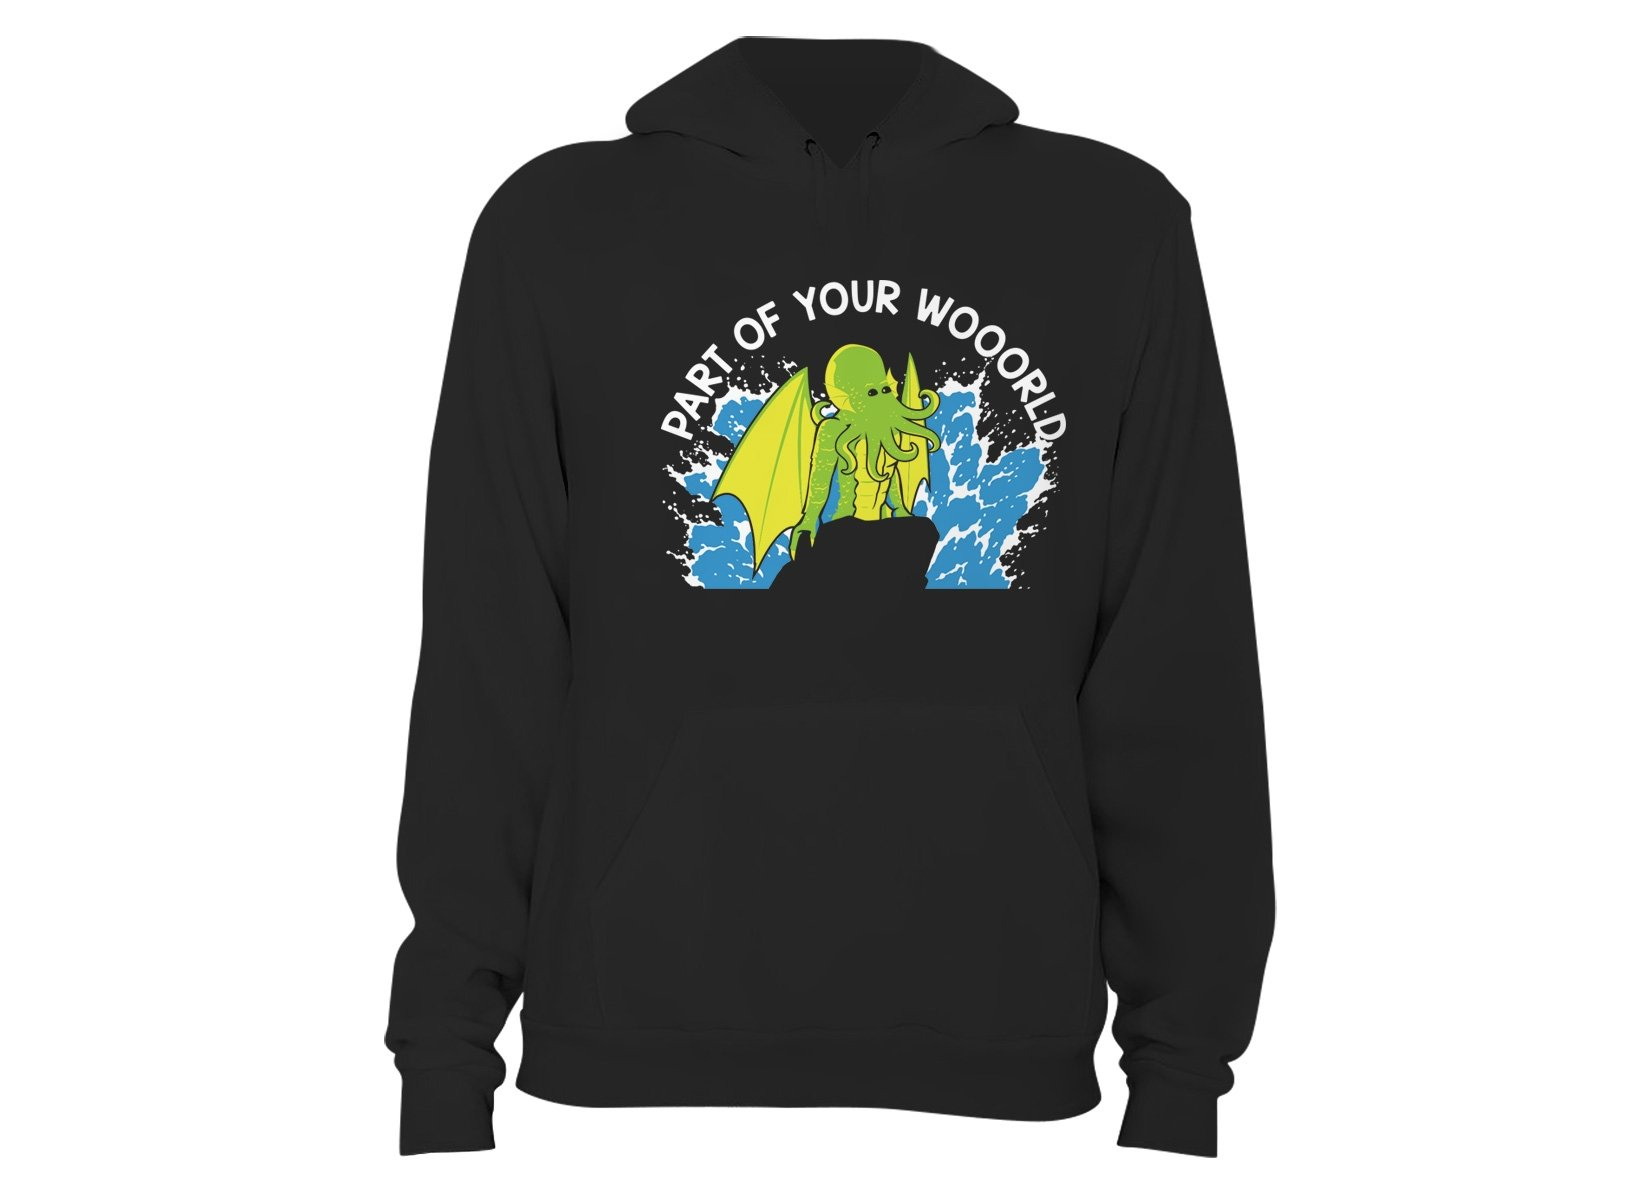 Part Of Your World on Hoodie